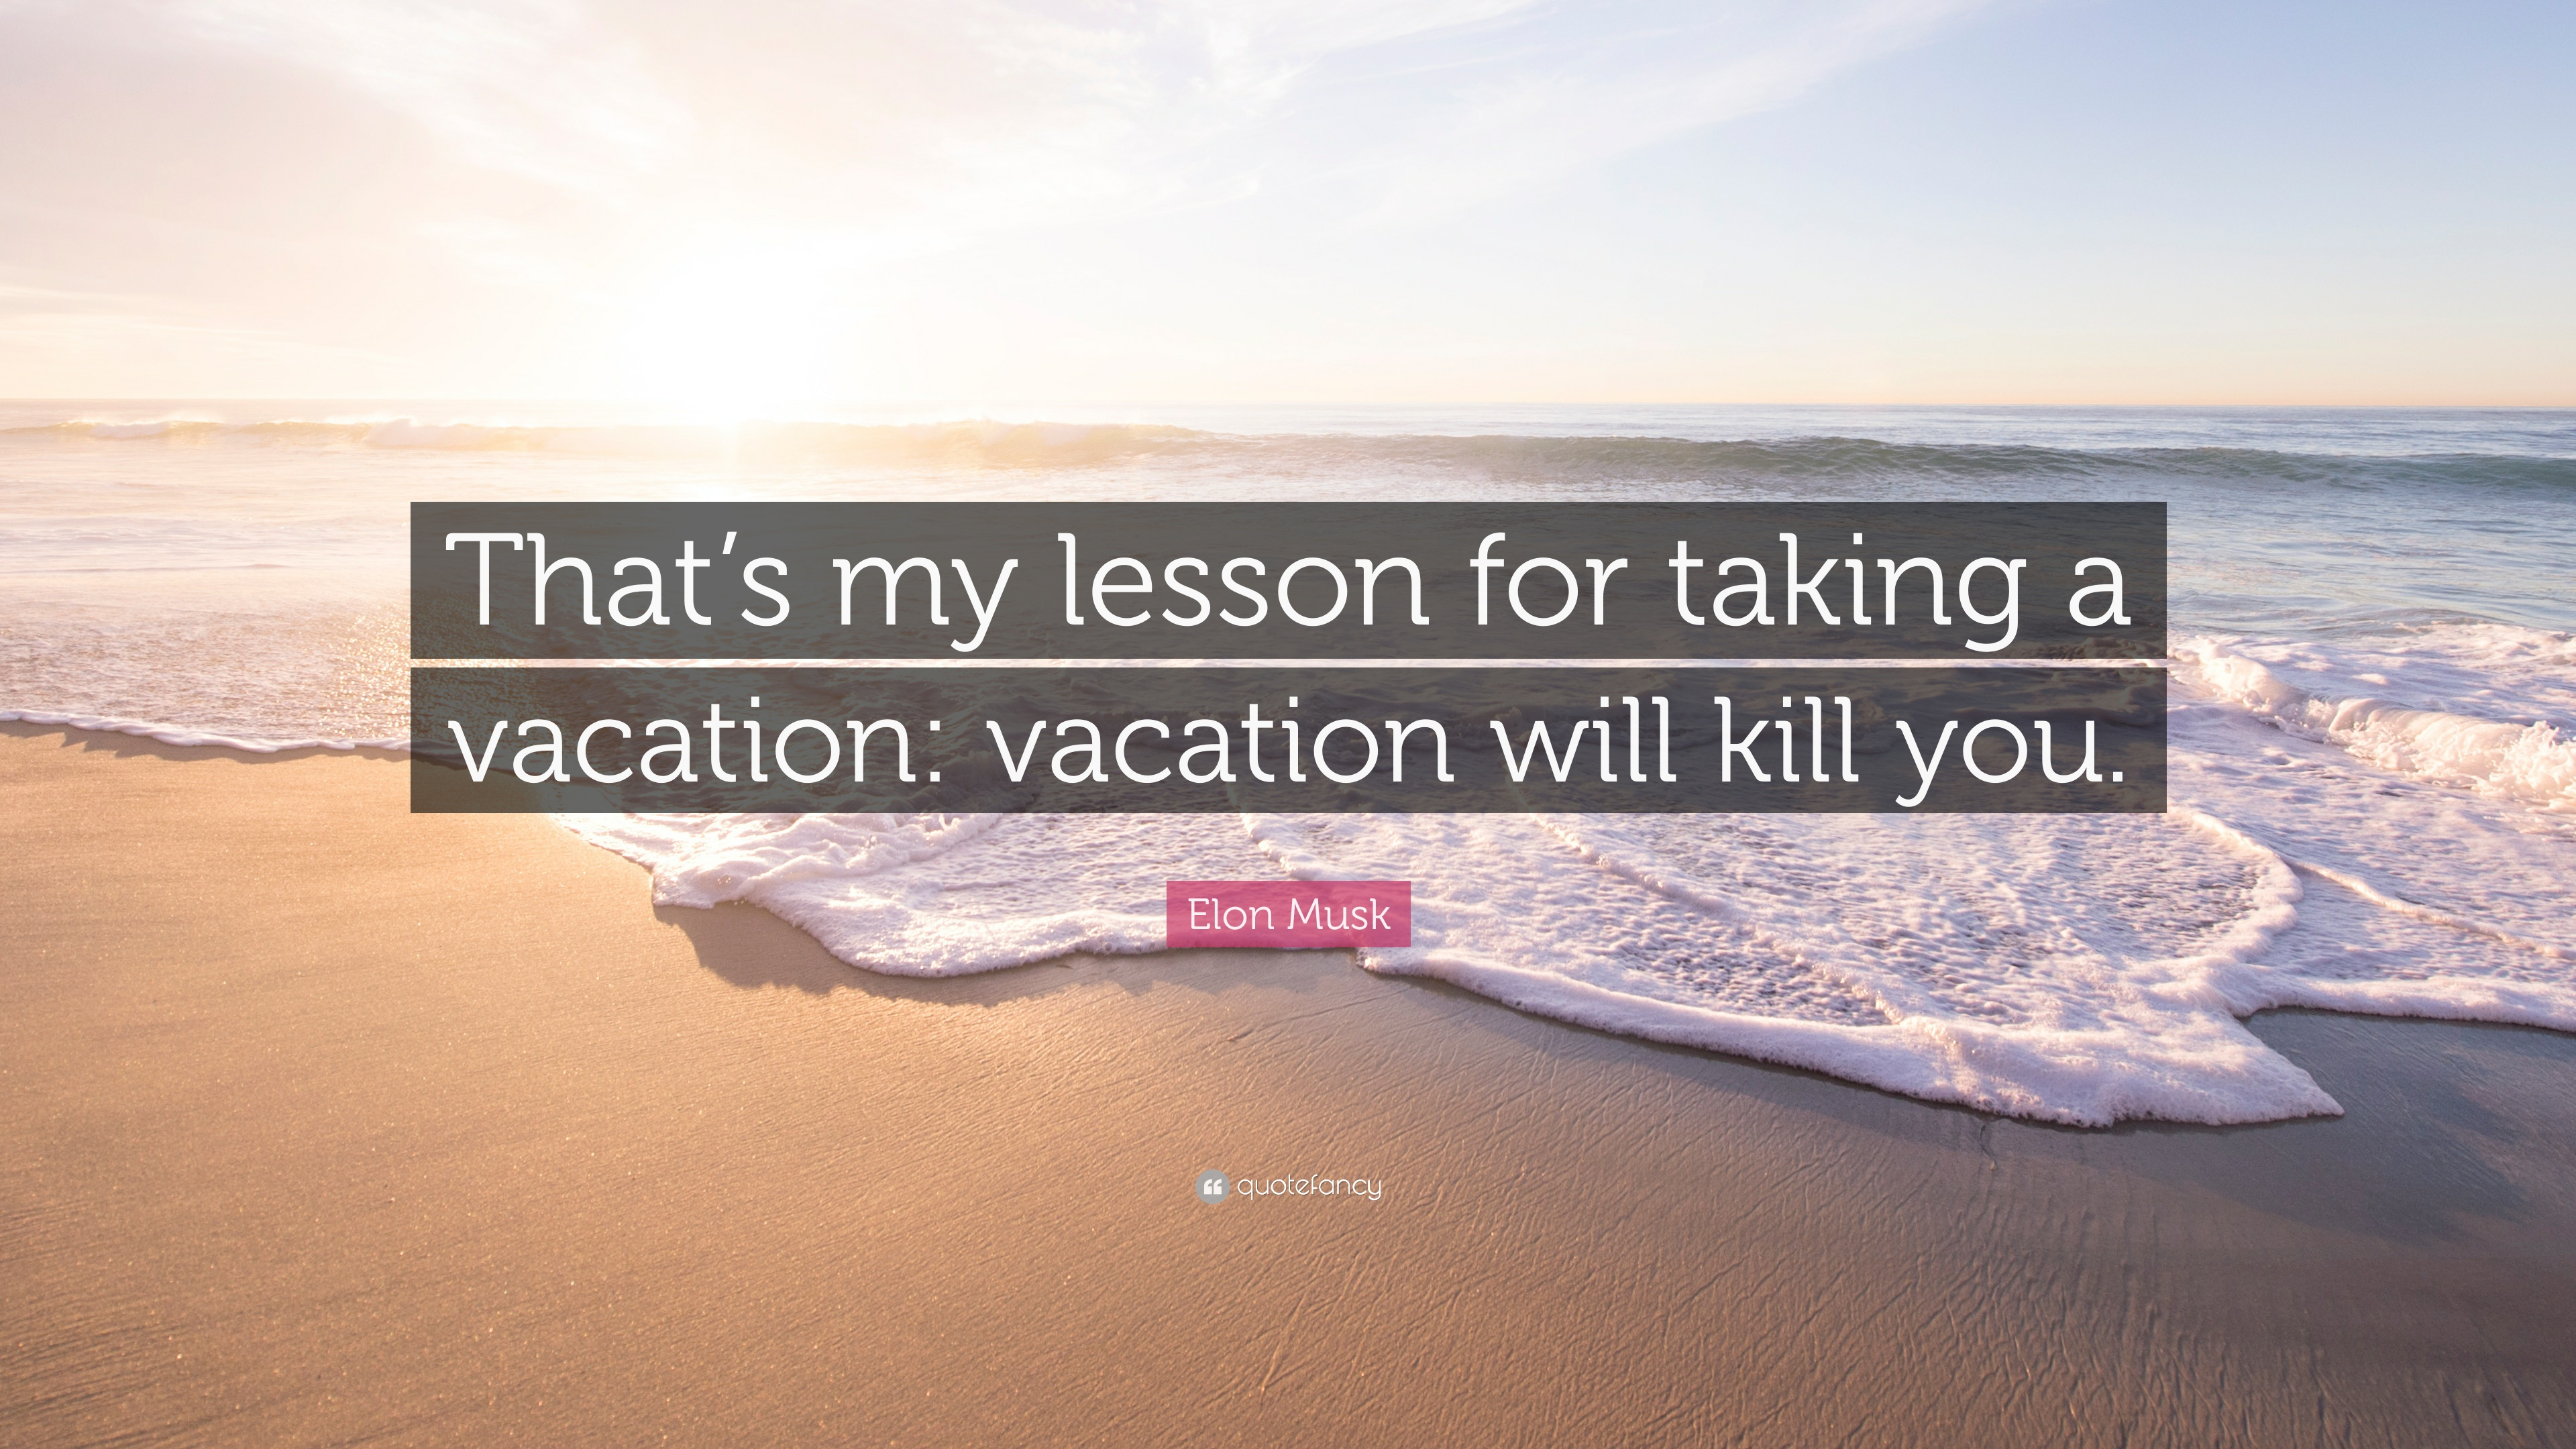 Elon Musk Quote Thats My Lesson For Taking A Vacation Will Kill